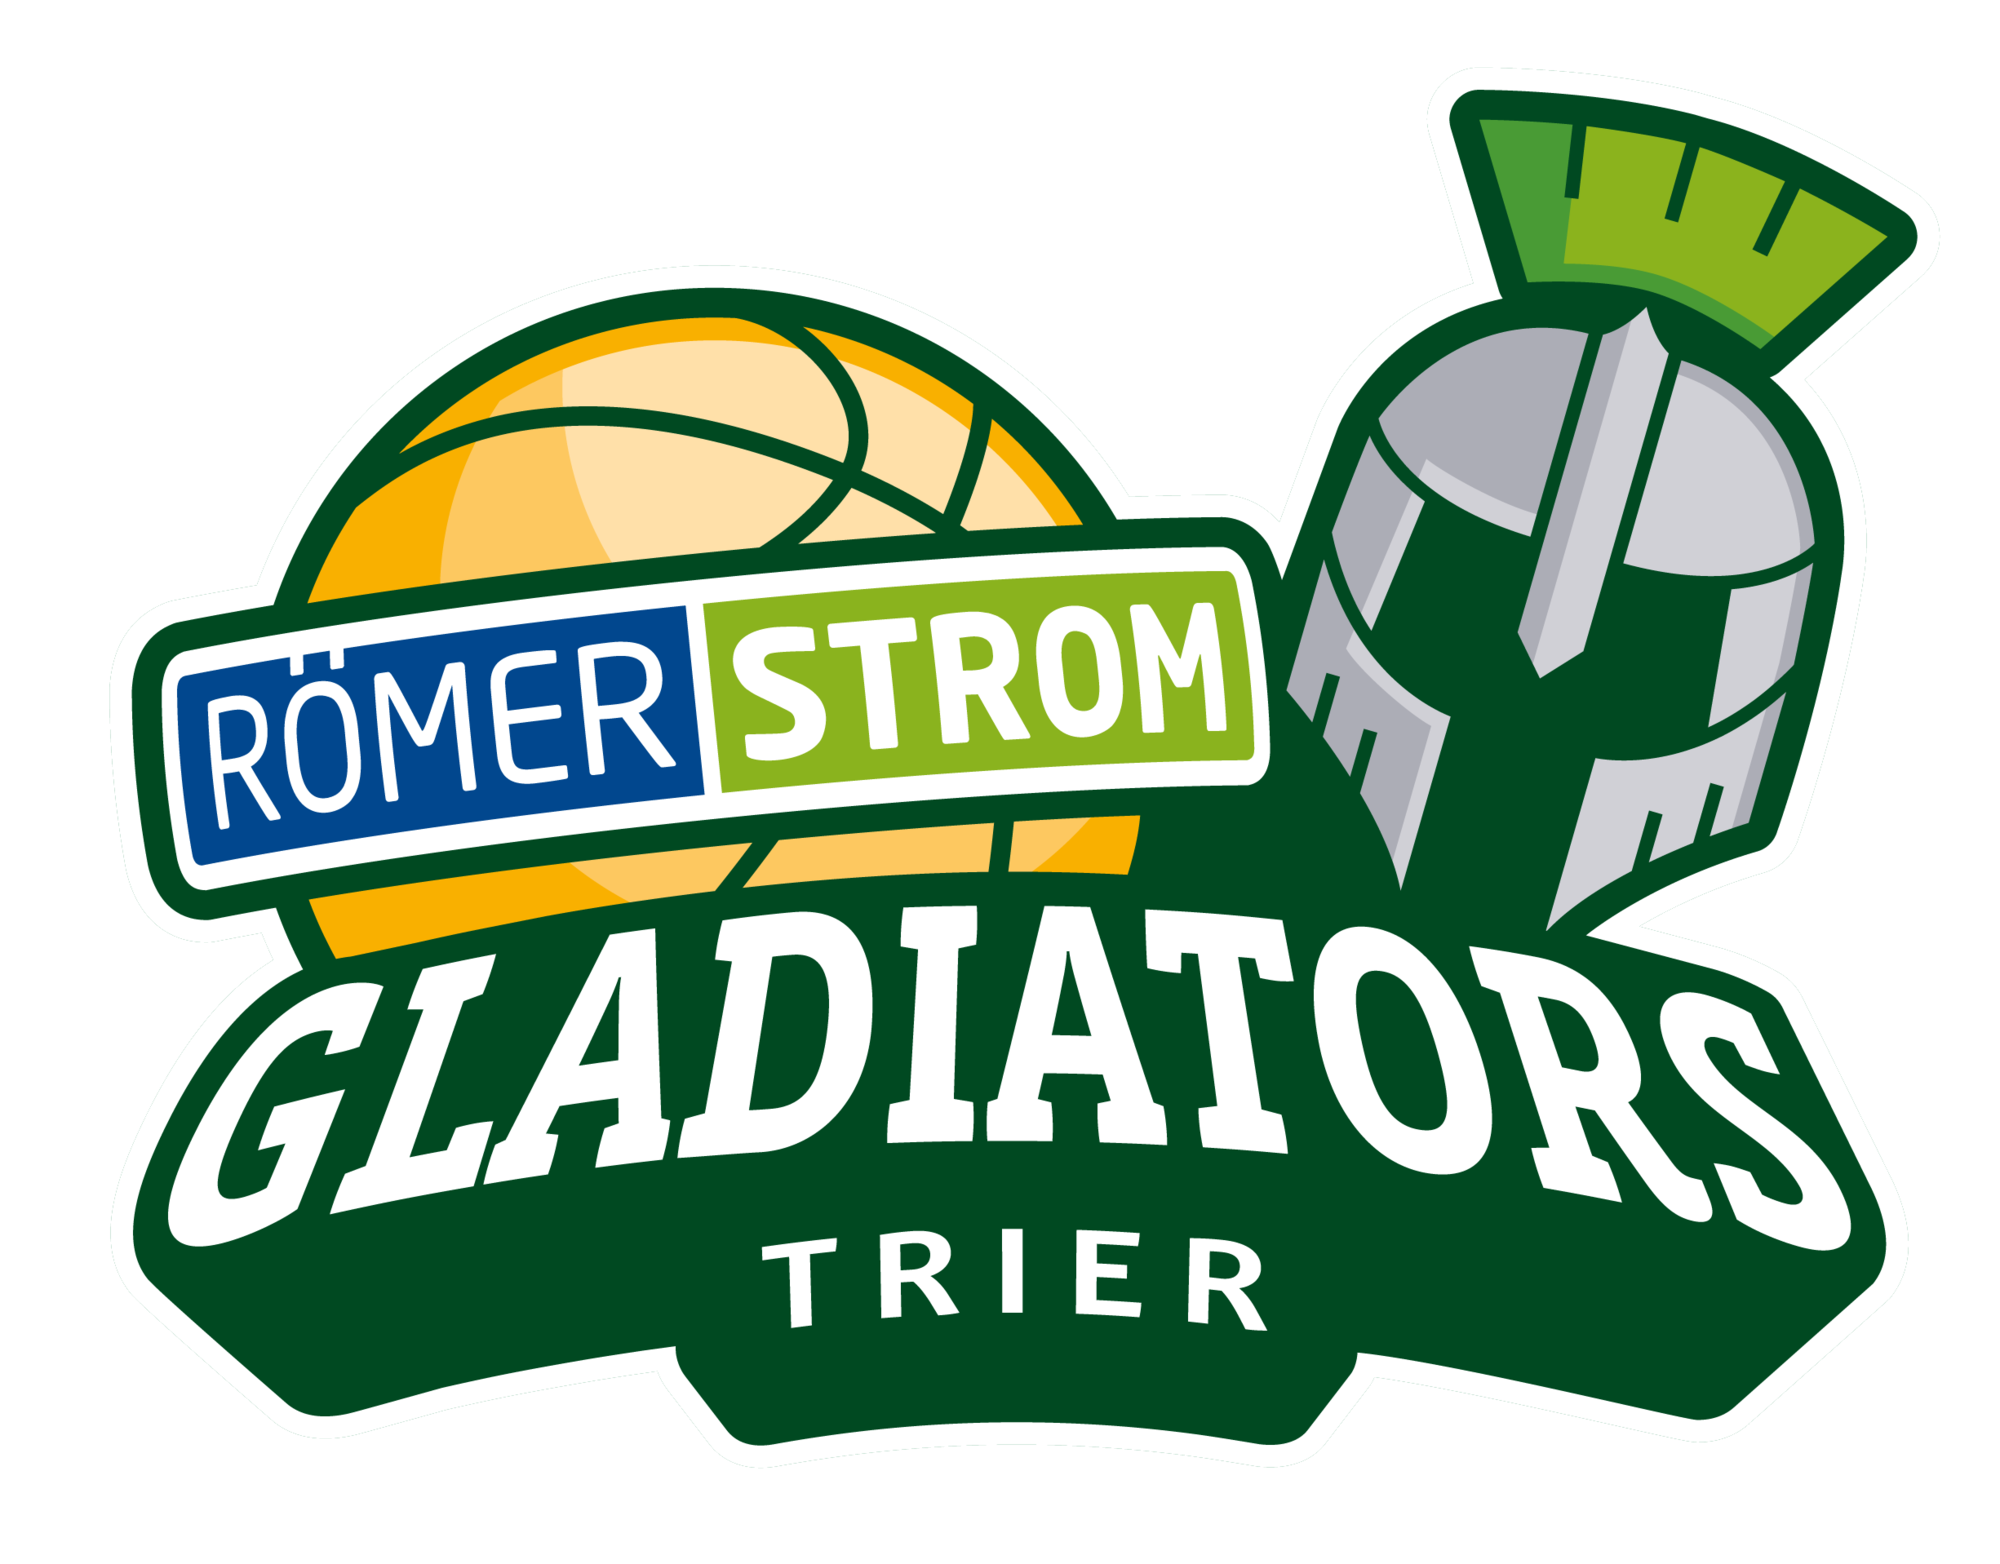 Logo Gladiators Trier